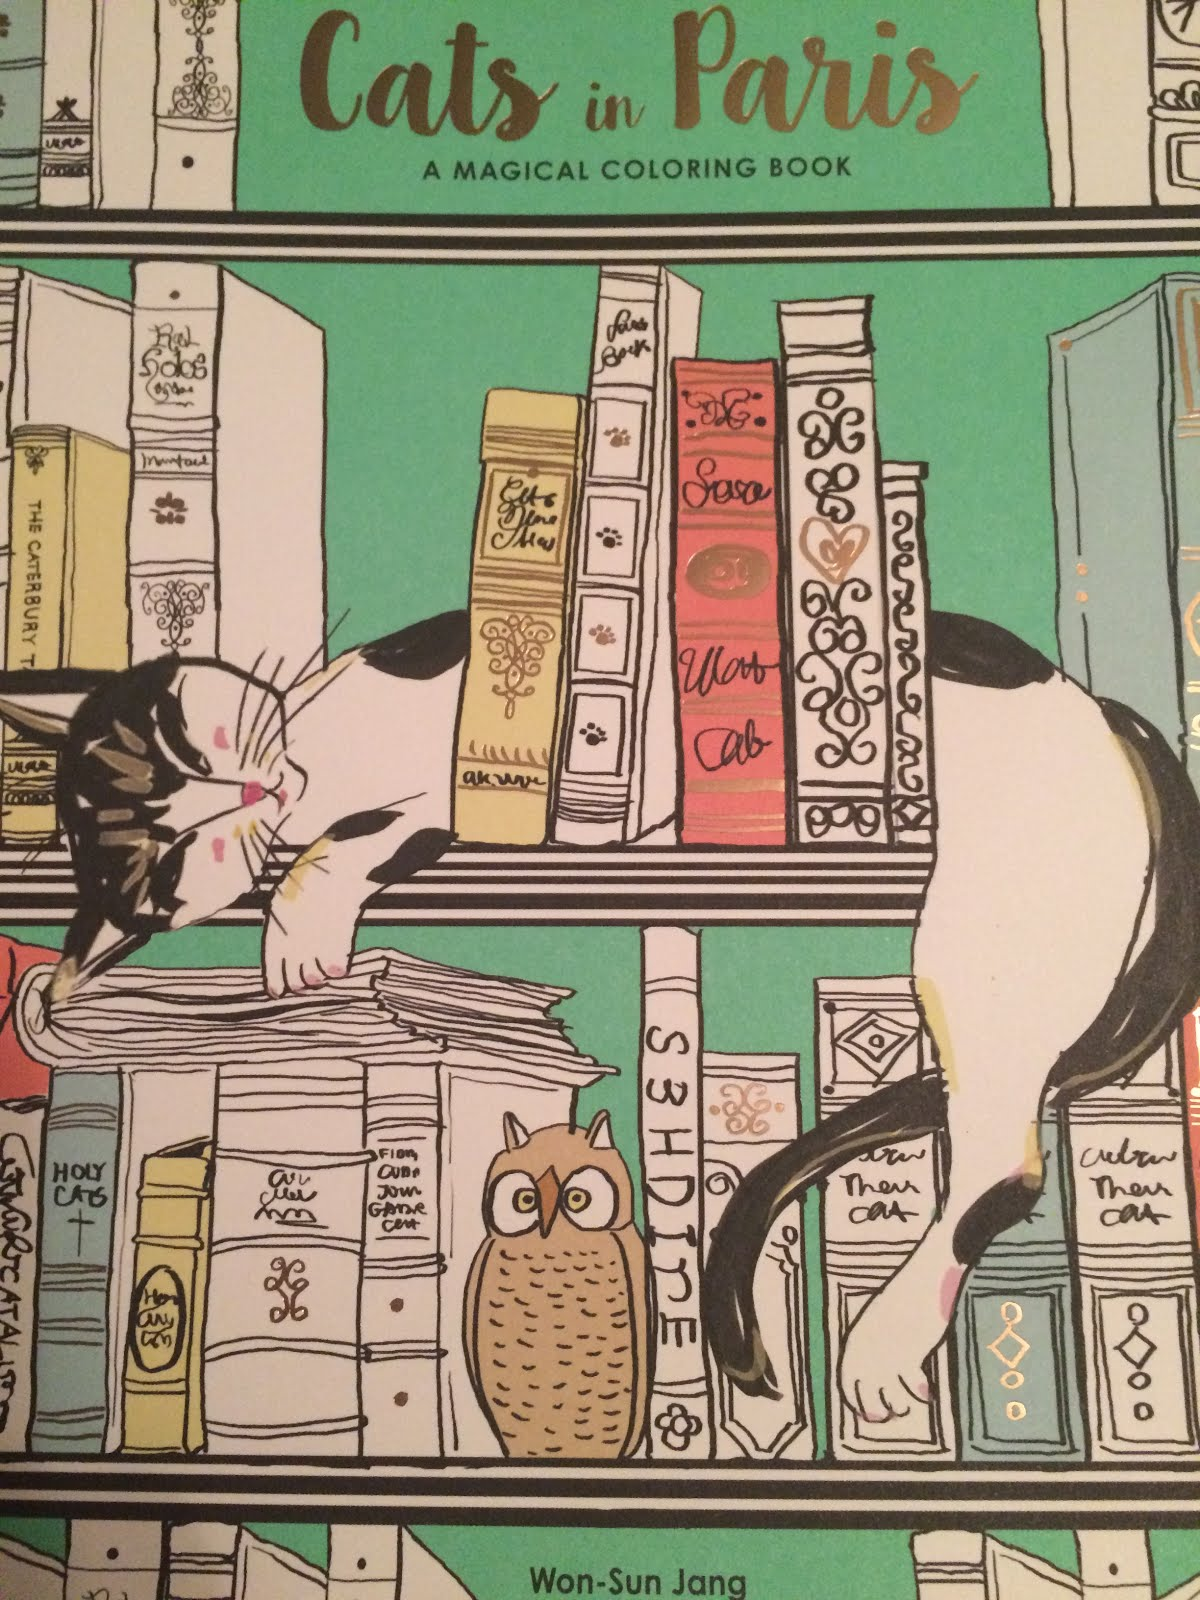 coloring book review cats in paris by won sun jang - Paris Coloring Book